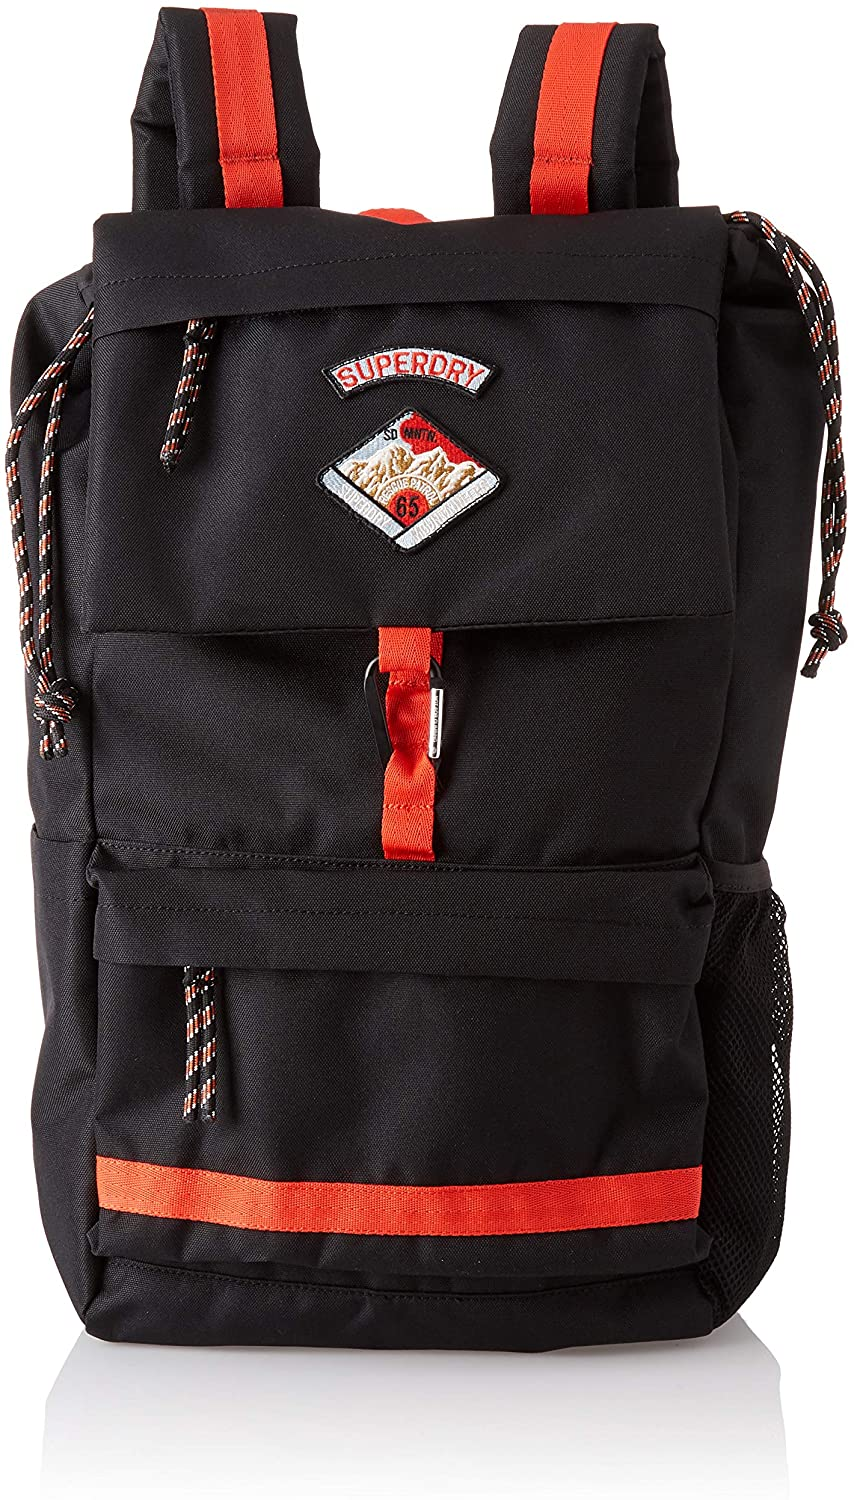 Superdry Men's Coleman Backpack